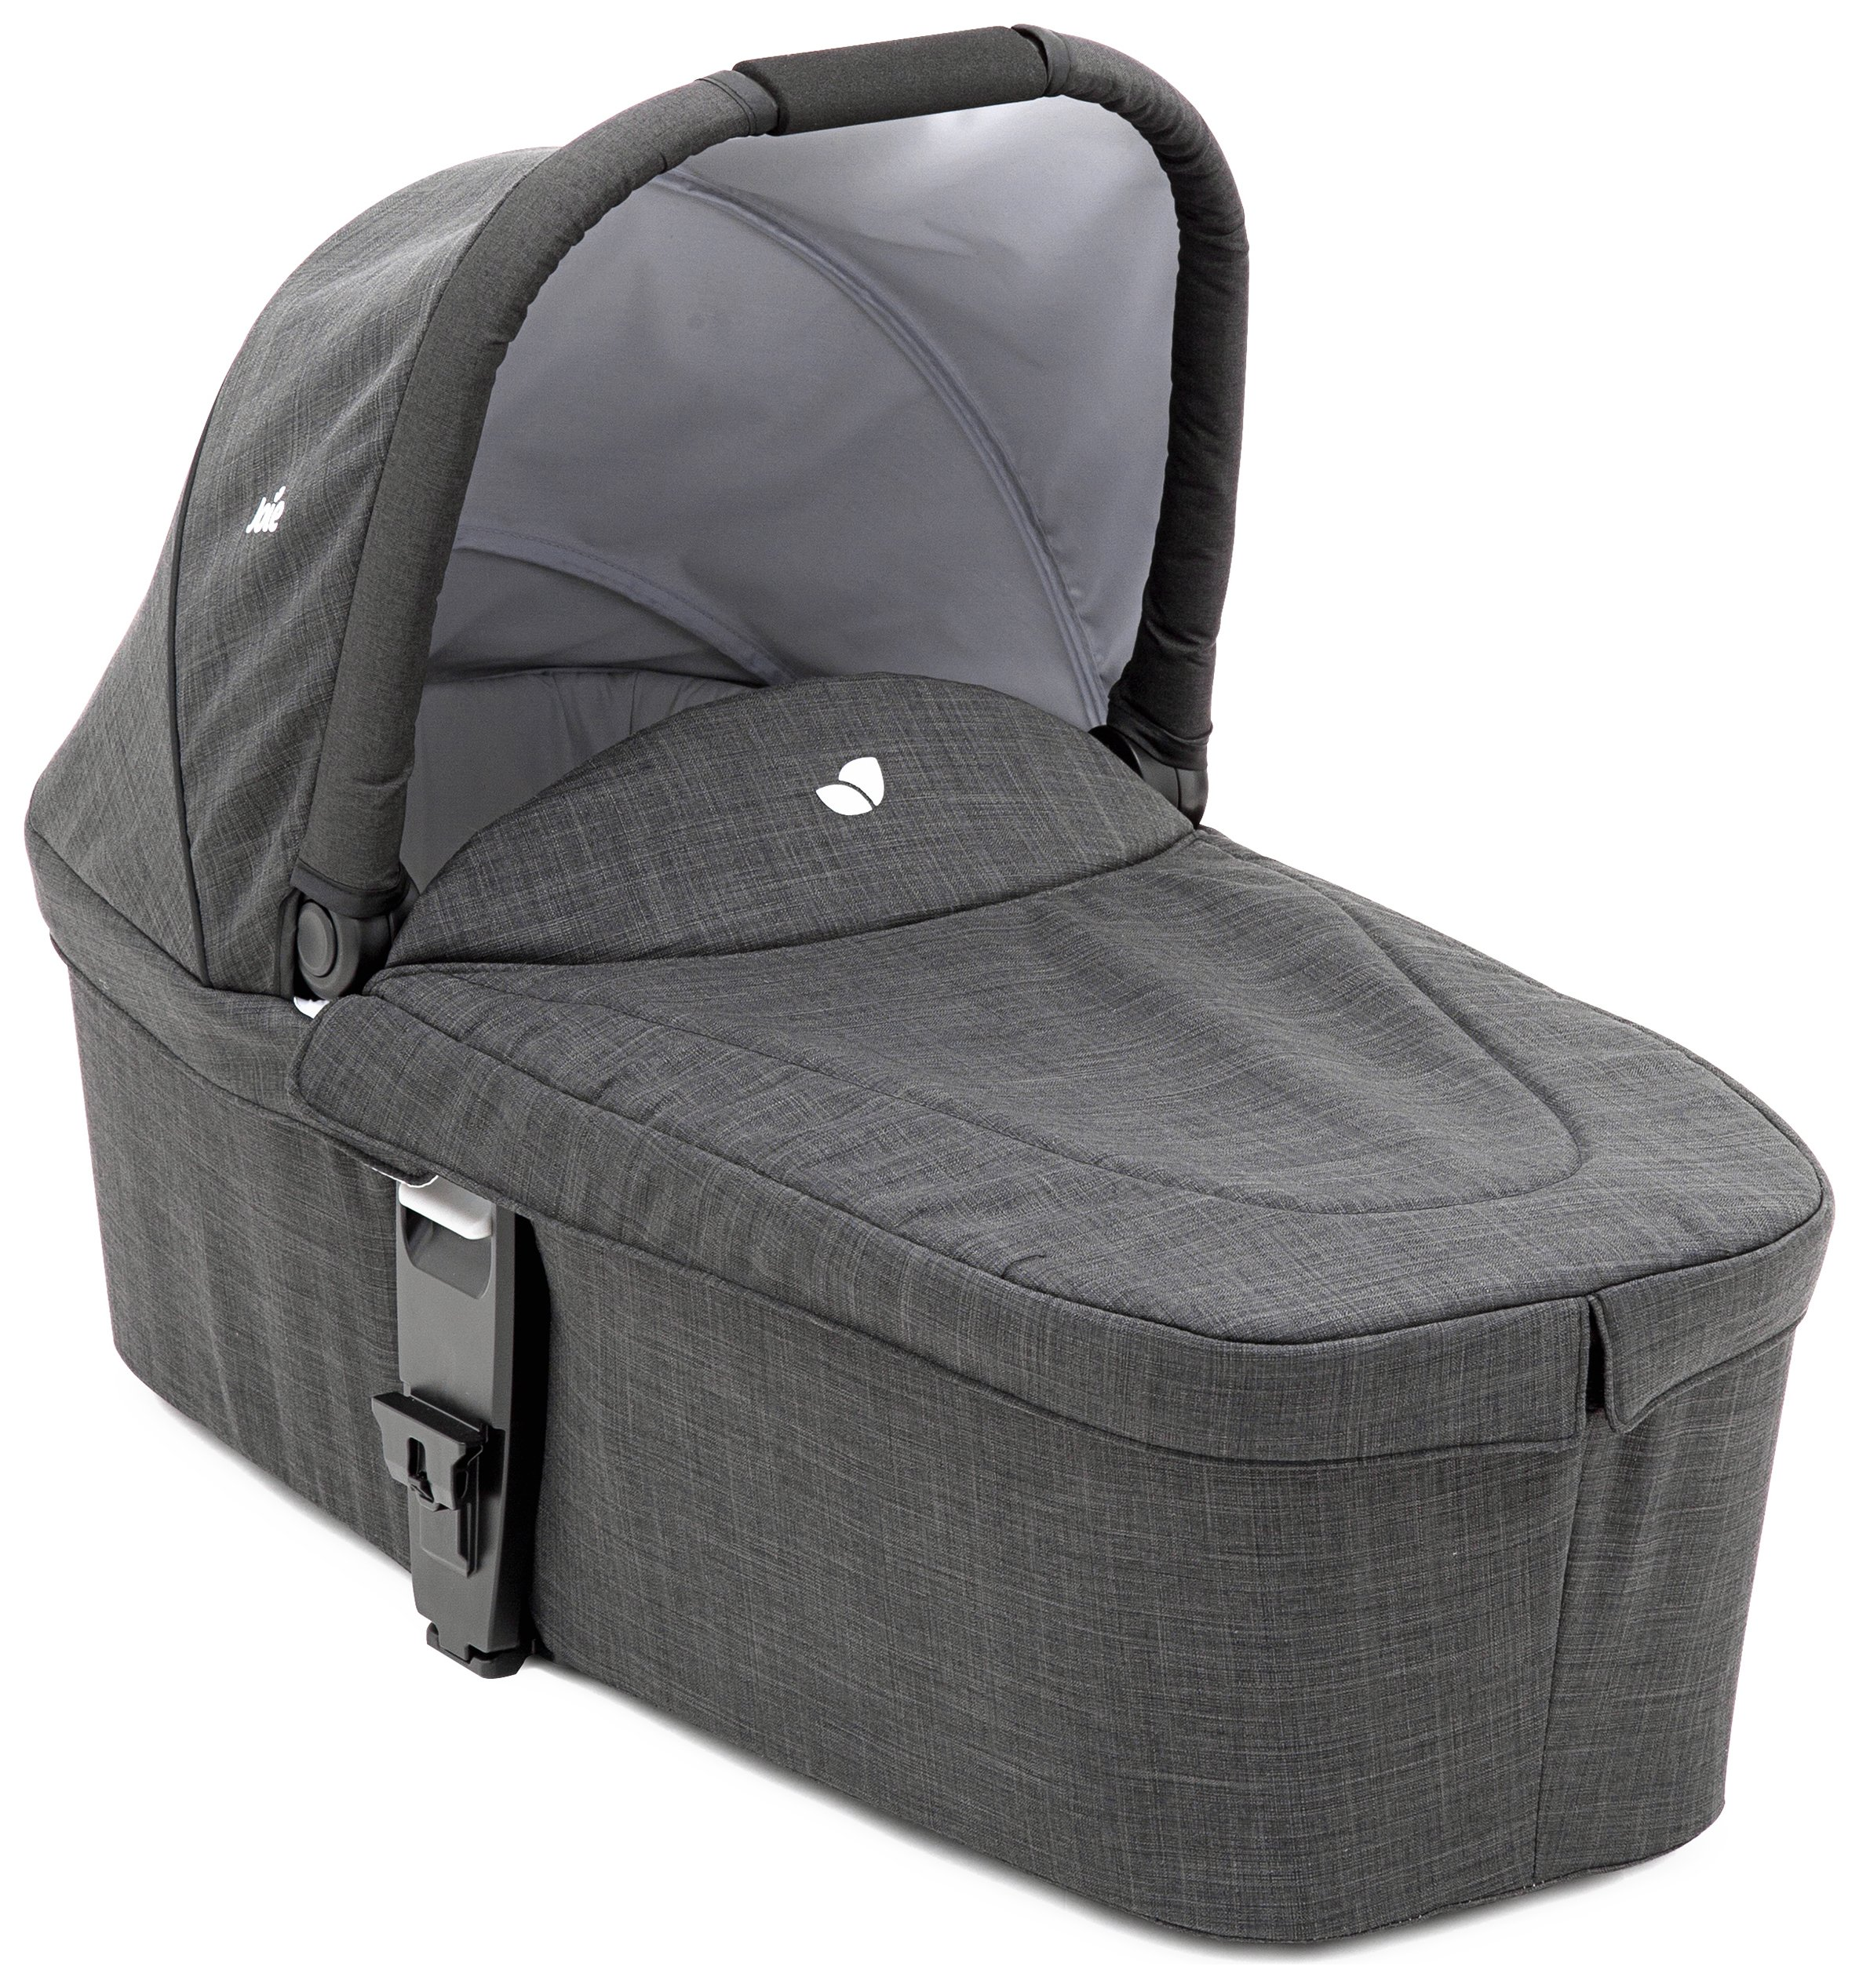 Image of Joie Pavement Chrome DLX Carry Cot.